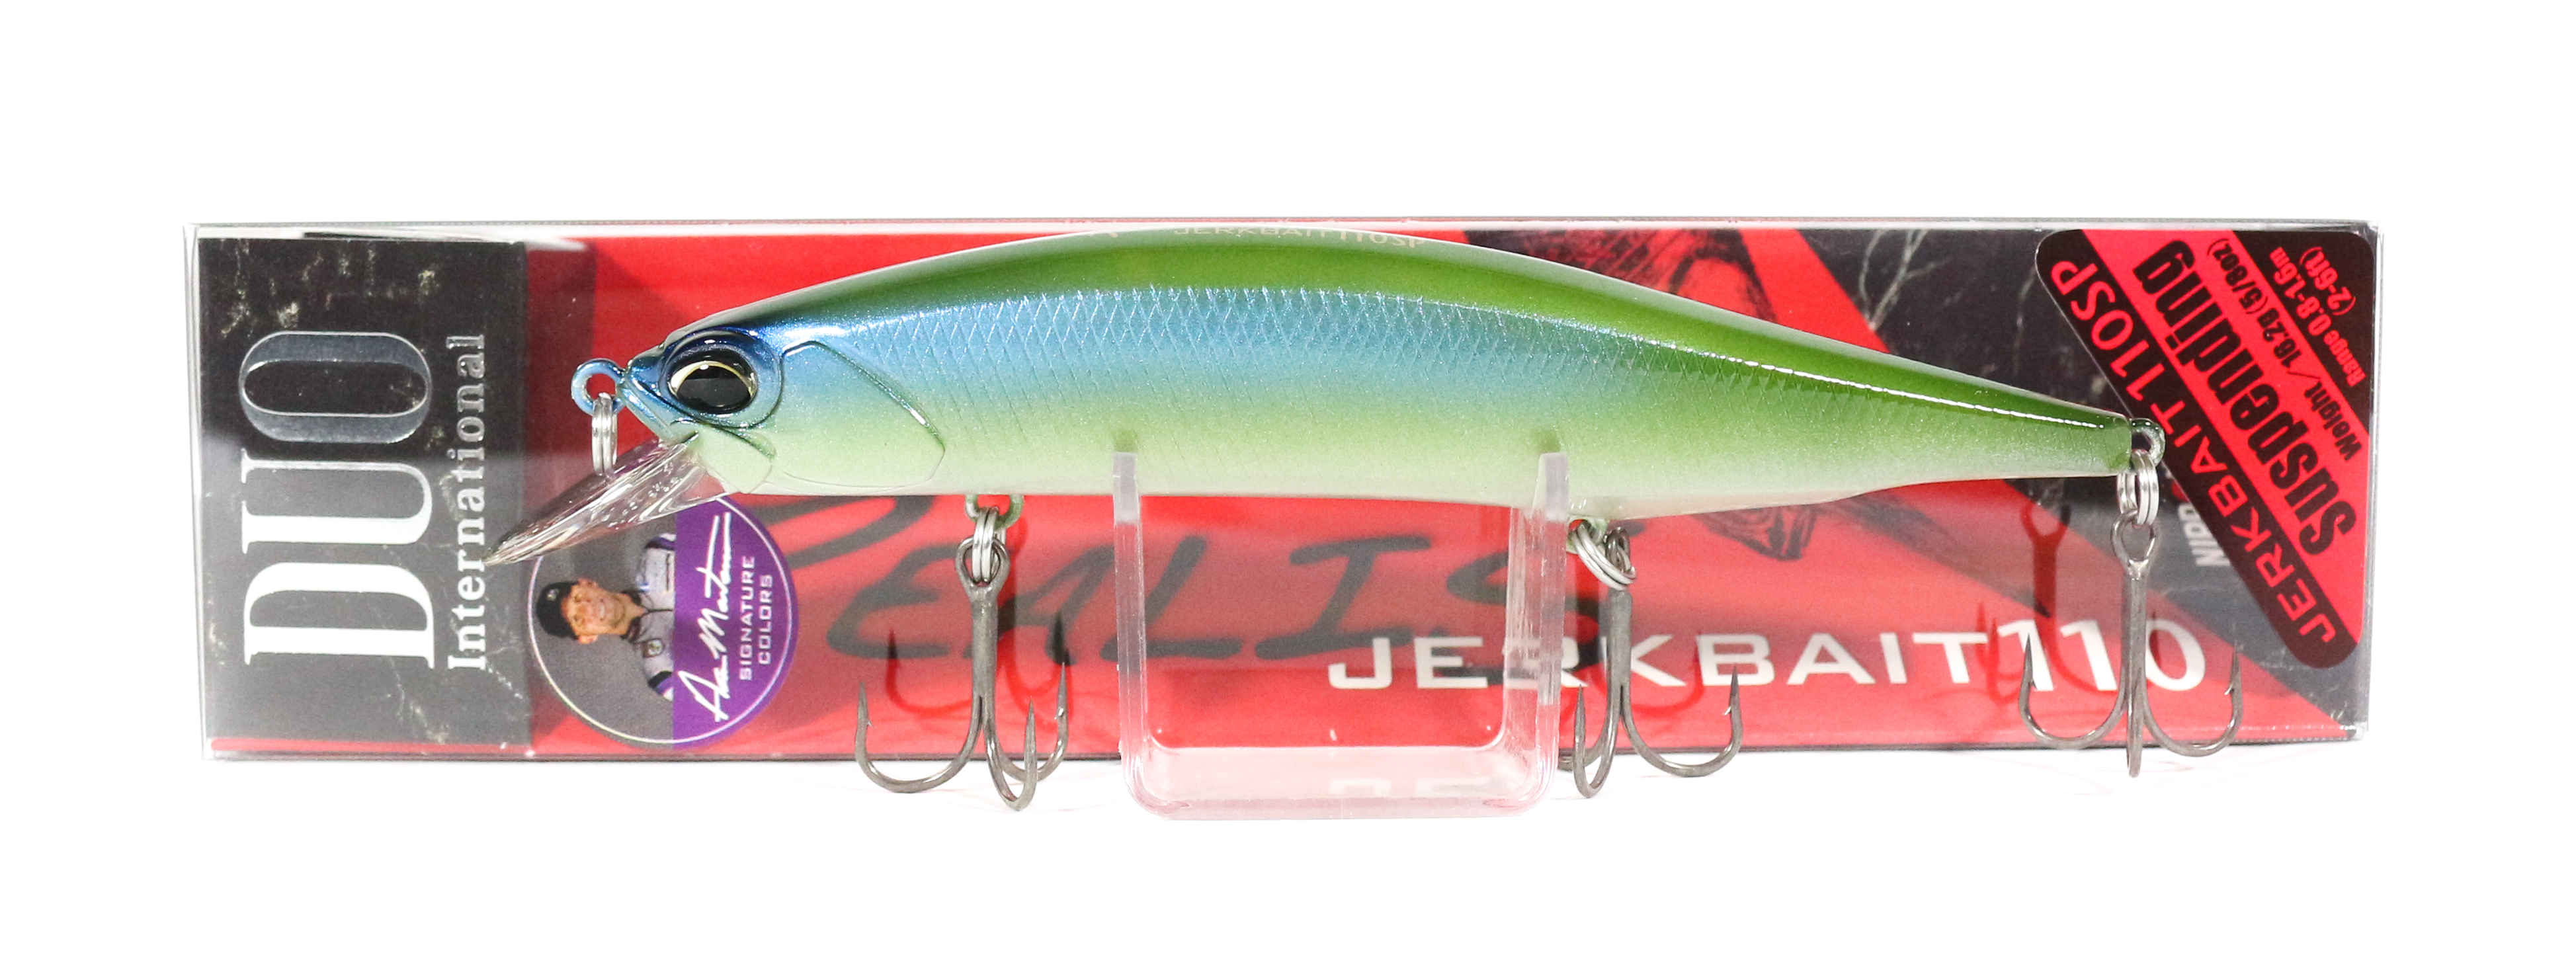 Duo Realis Jerkbait 110SP Suspend Lure CCC3164 (4522)